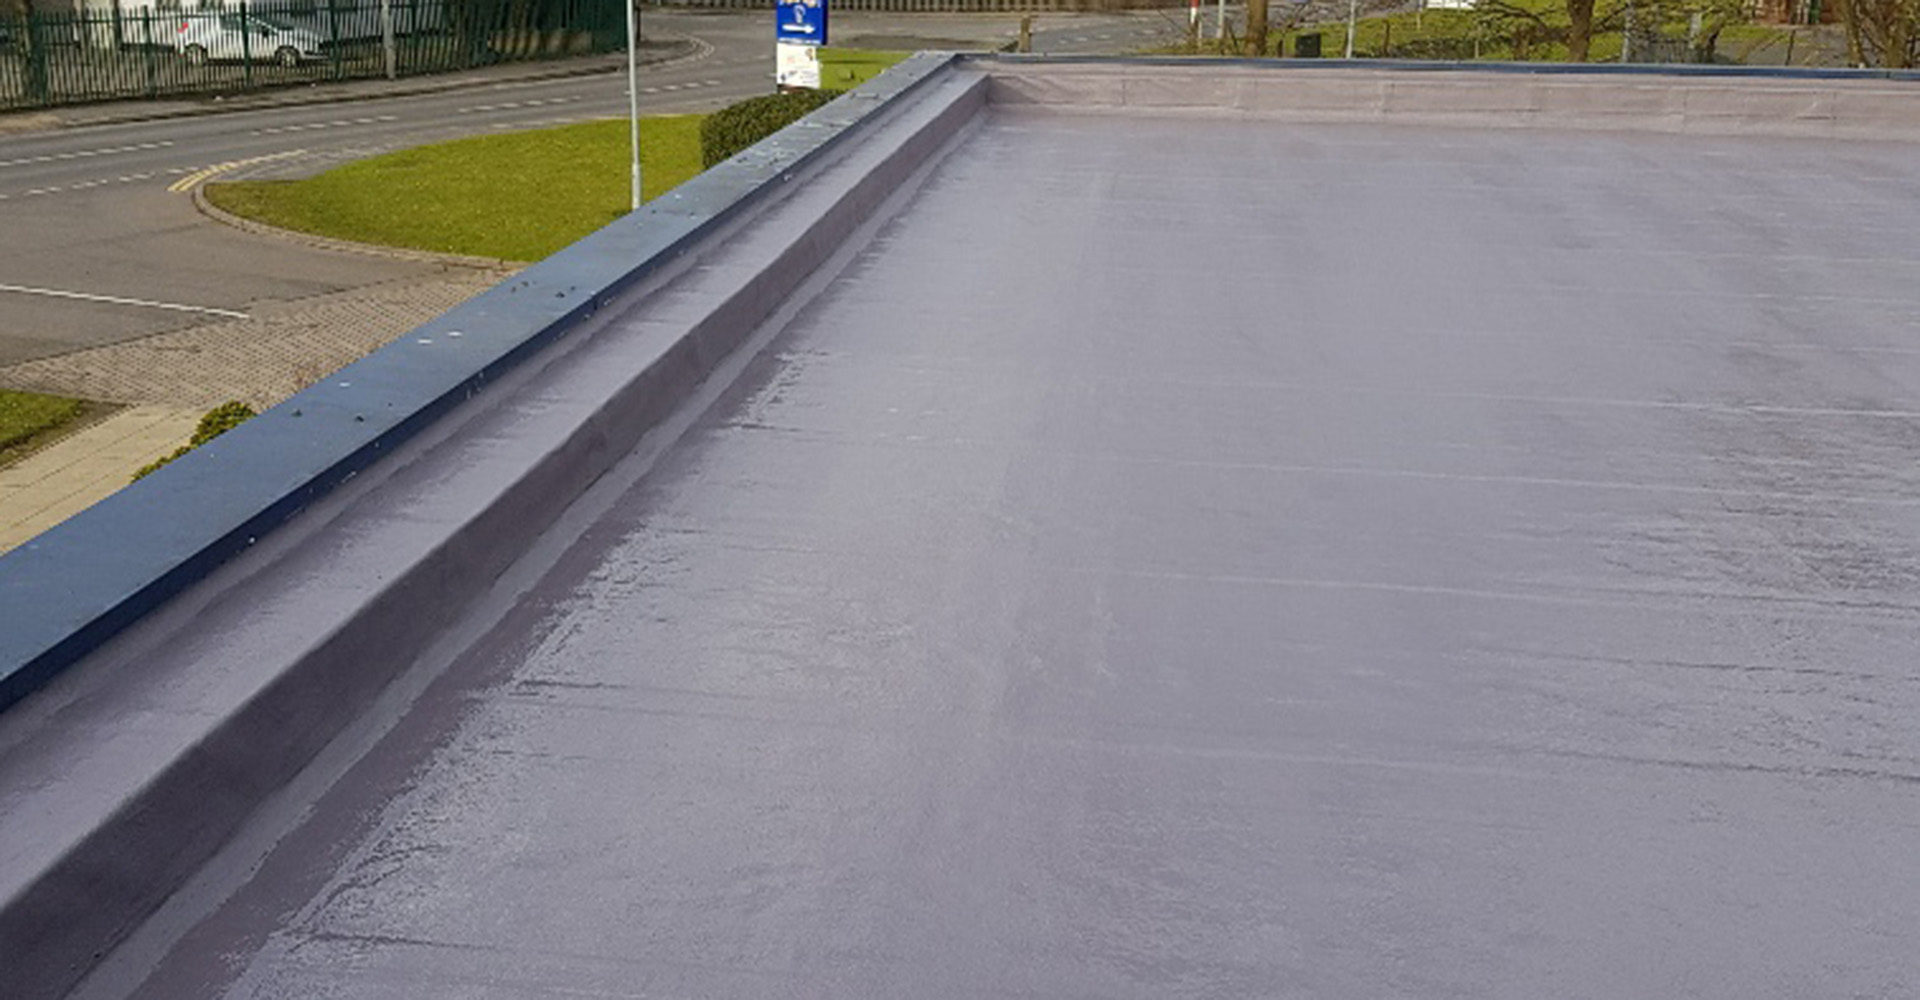 Polyroof's Protec system for Vodafone's Brunel House